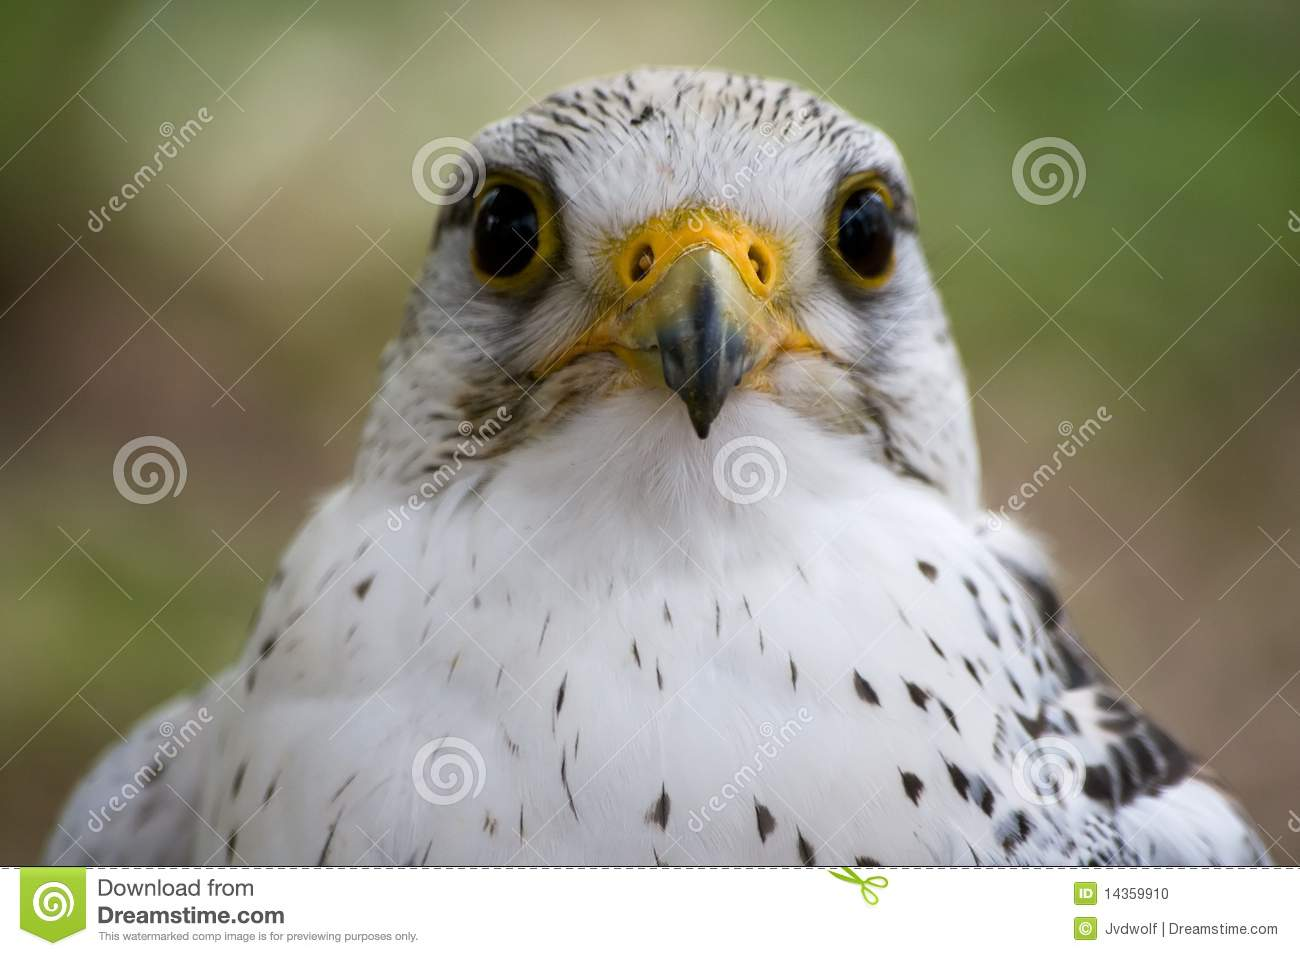 White Falcon Bird Stock Photo - Image: 14359910